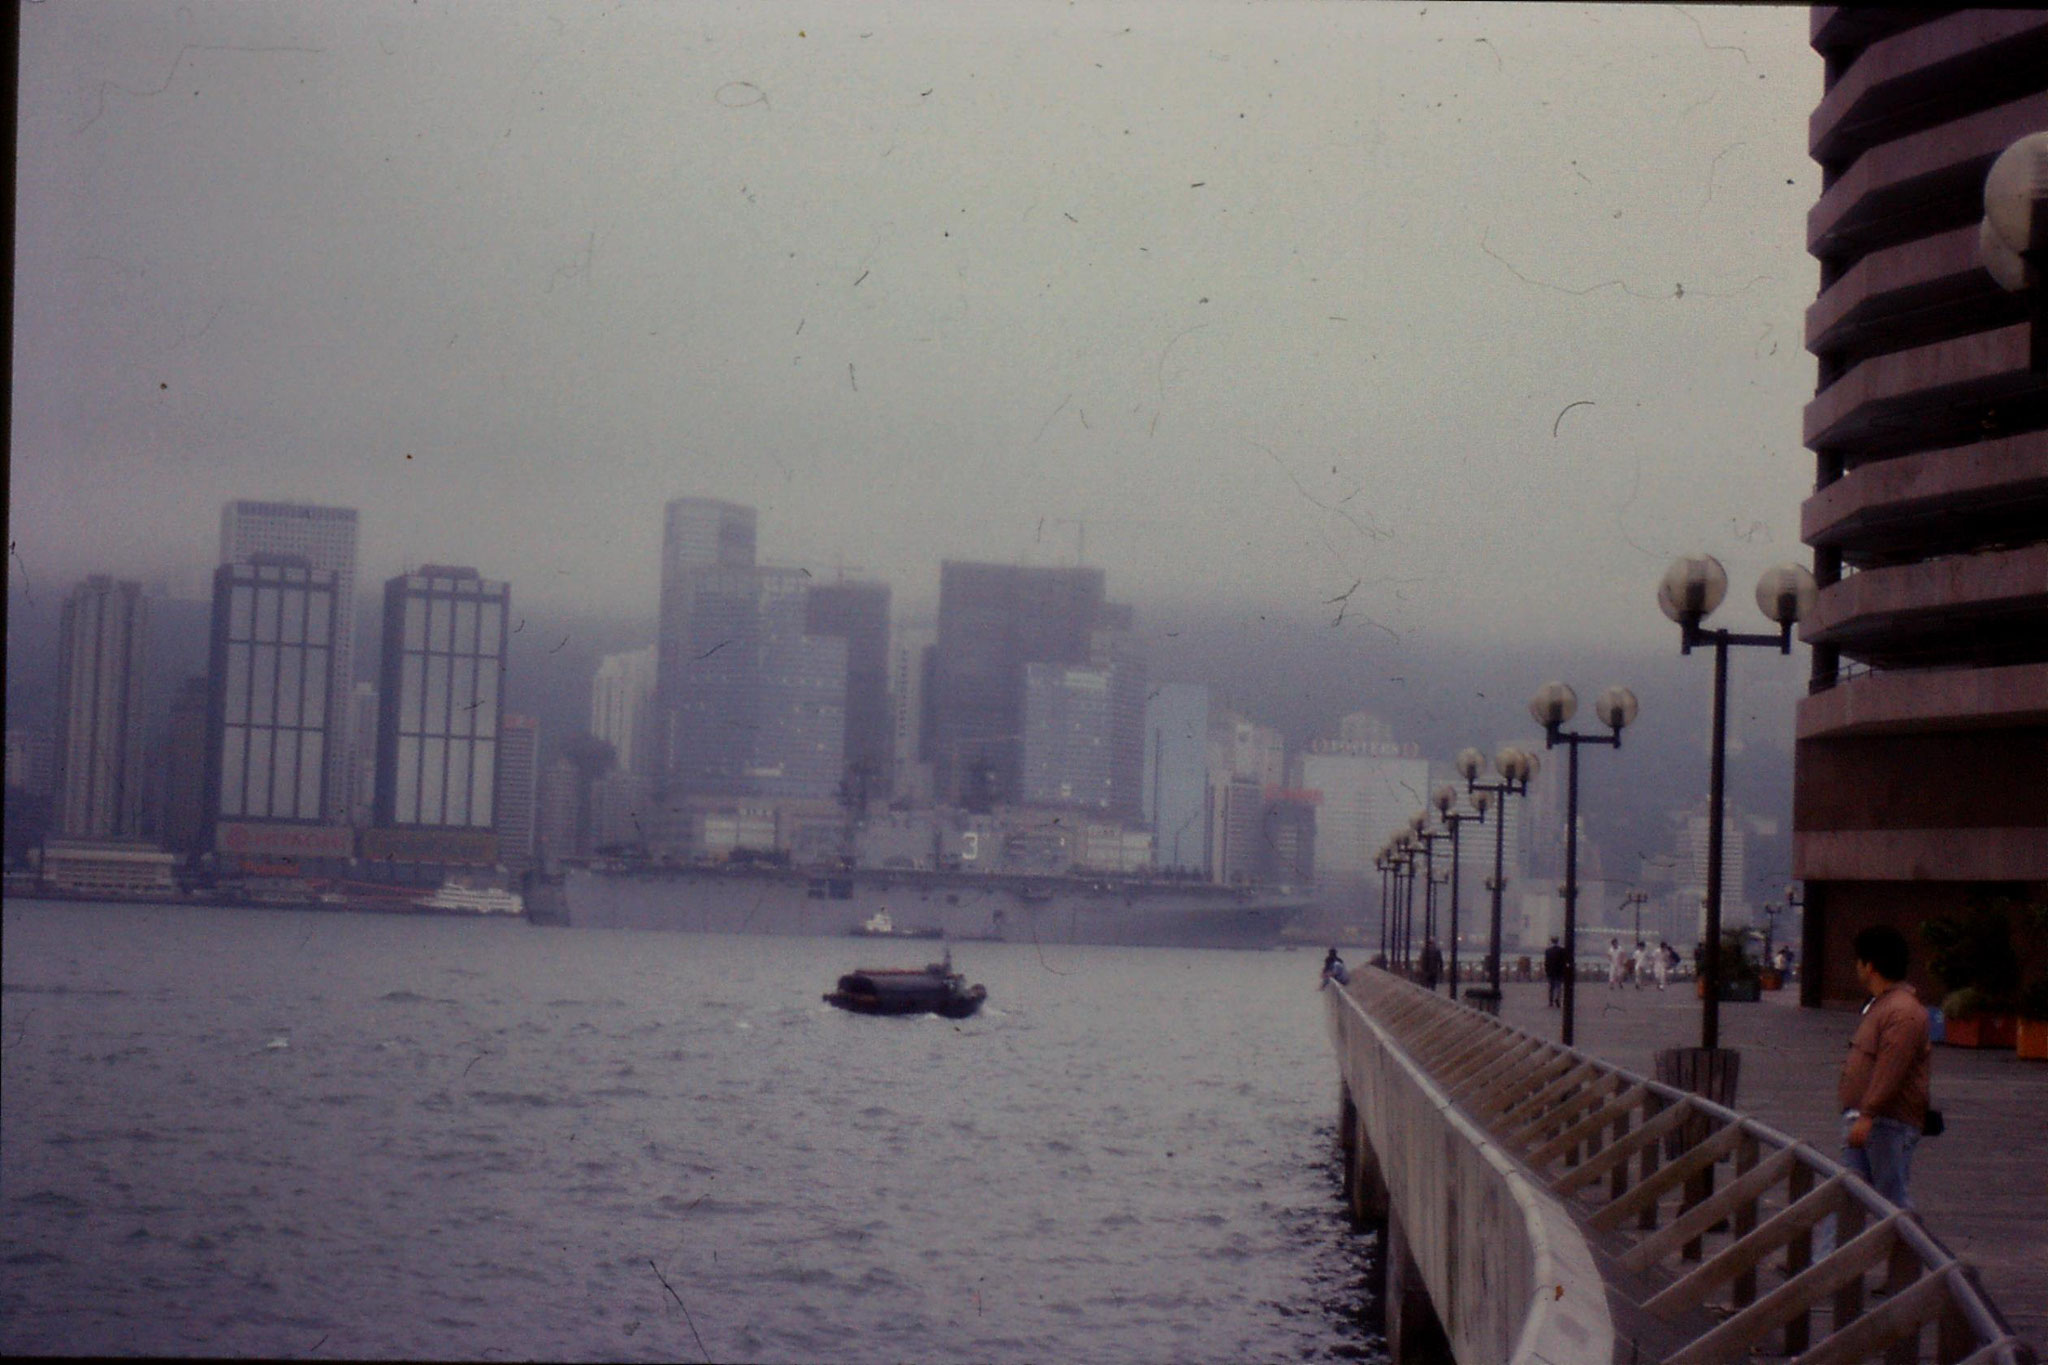 6/4/1989: 17: Hong Kong view from Kowloon